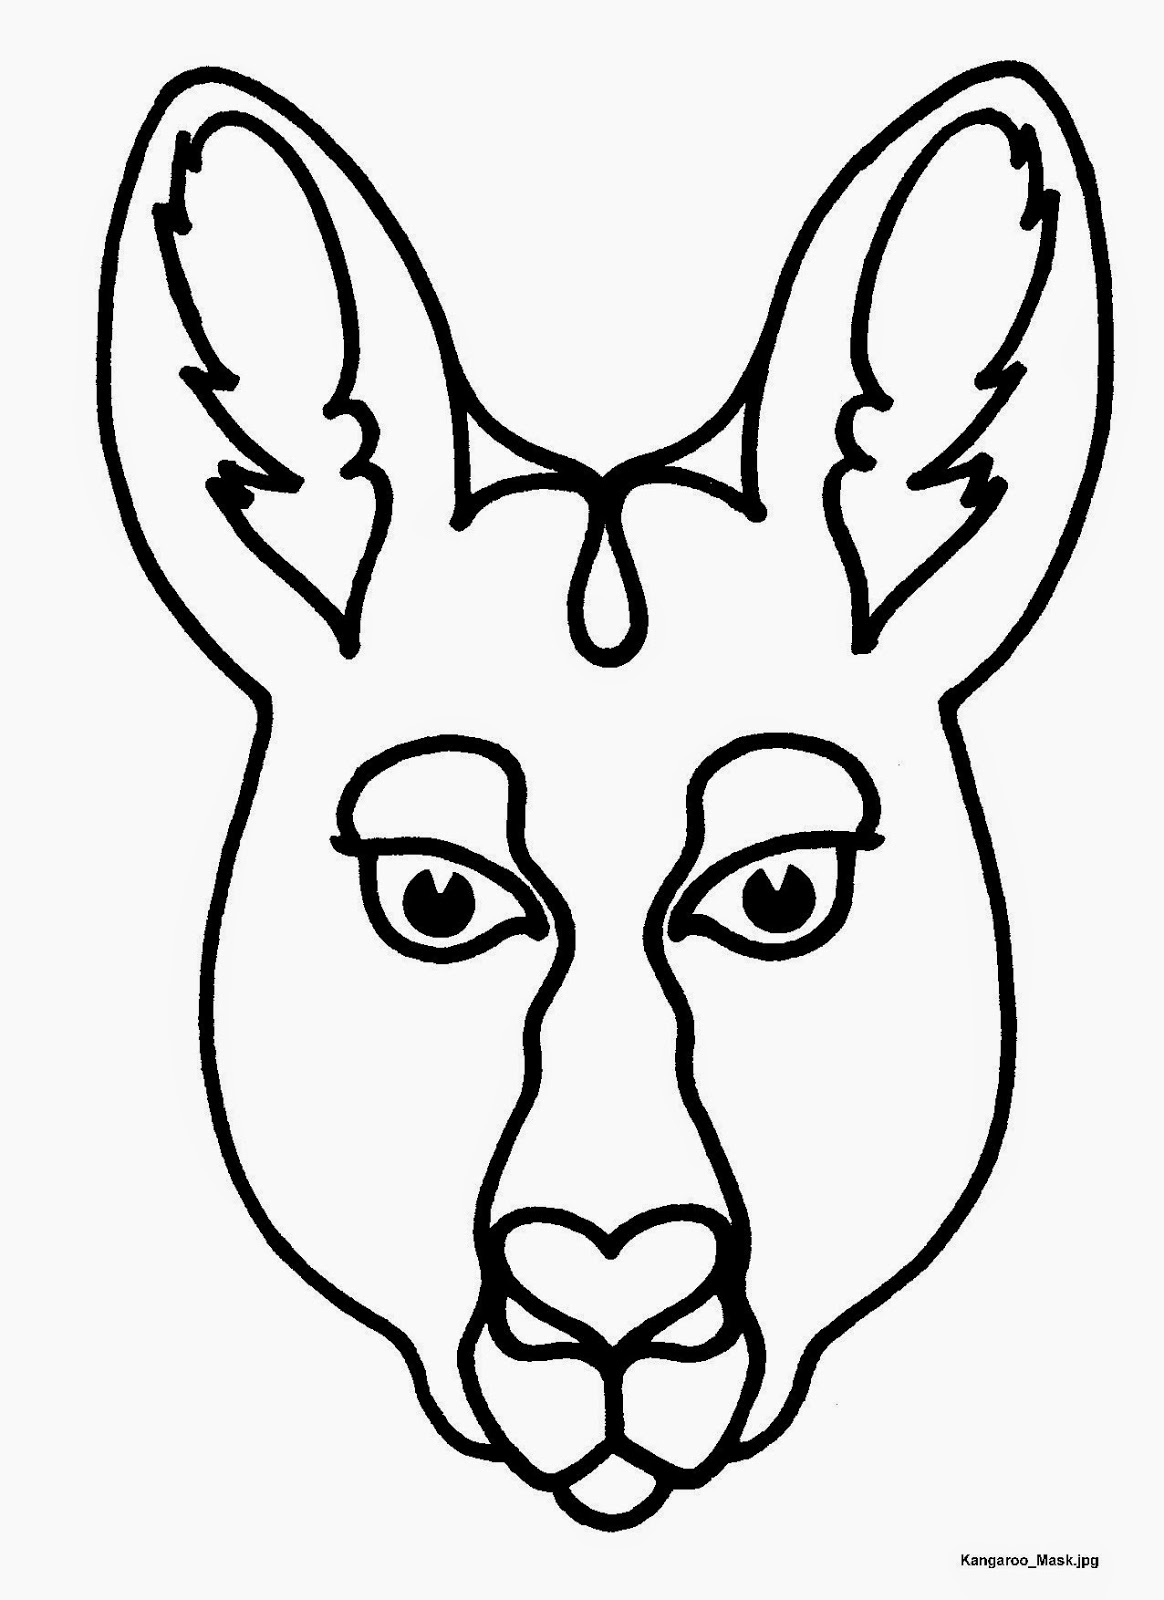 template of kangaroo mask